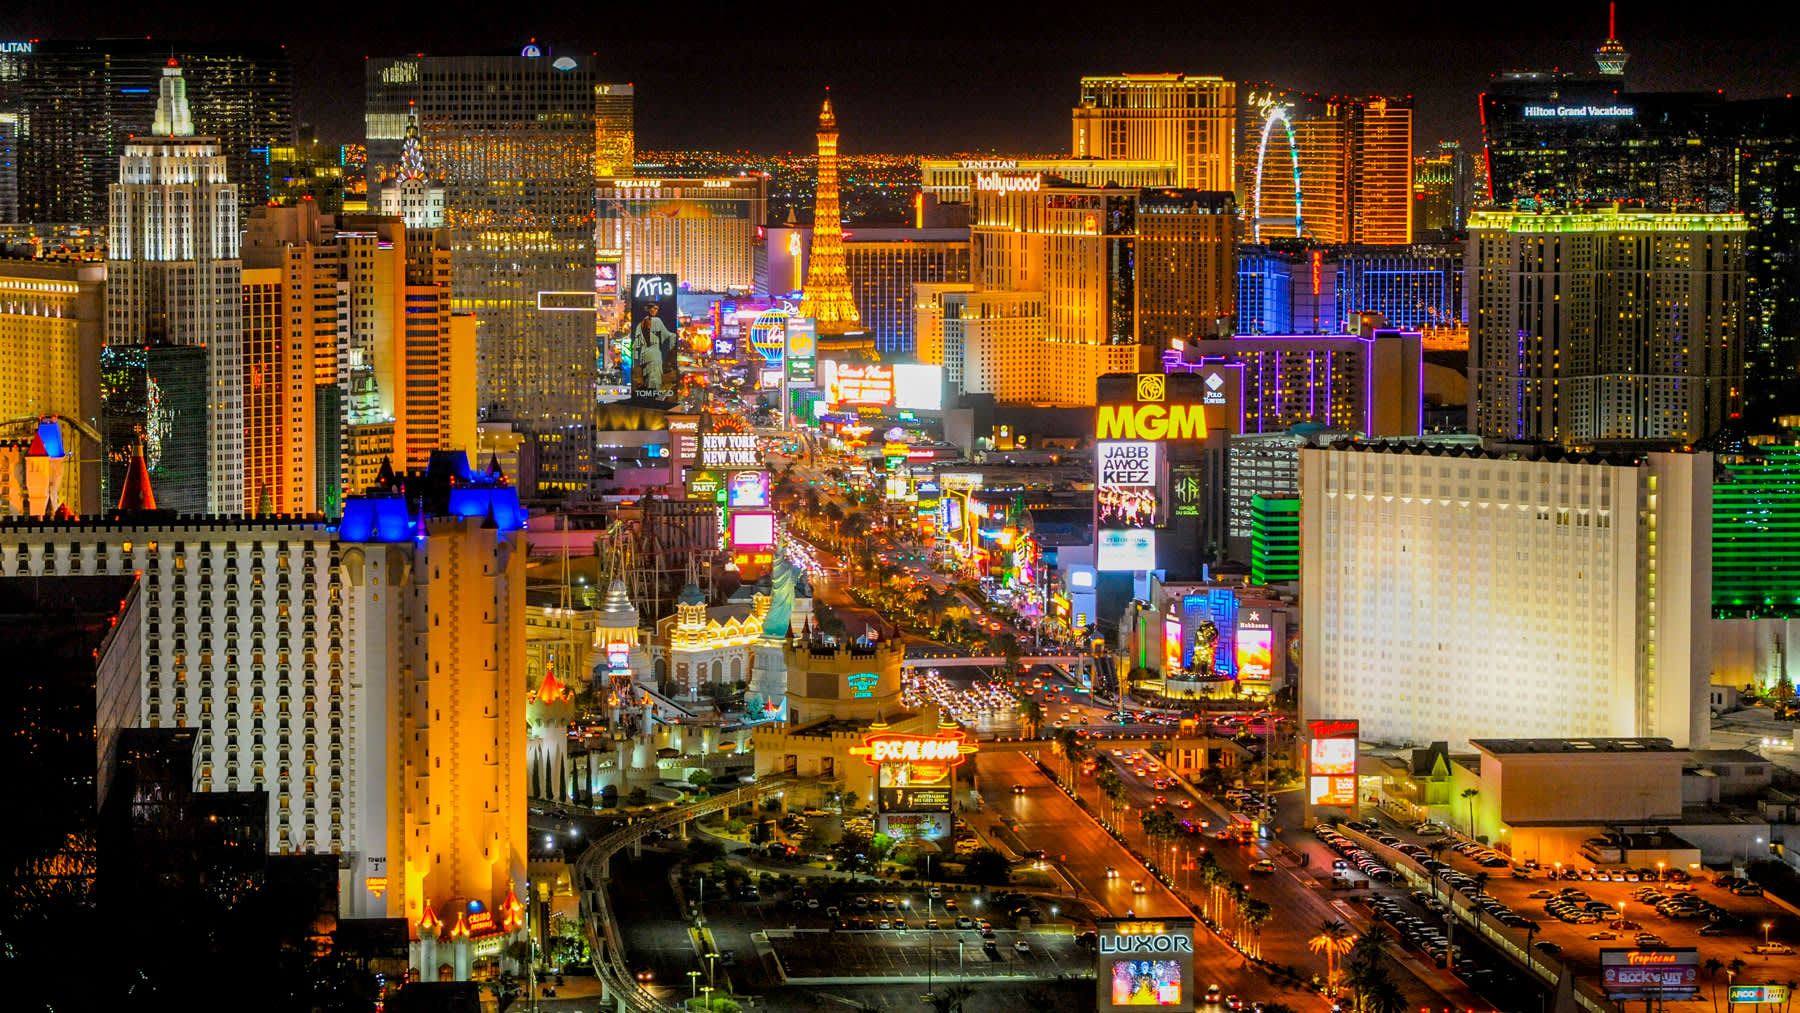 Sports betting helps propel casinos to fourth straight year of revenue gains thumbnail